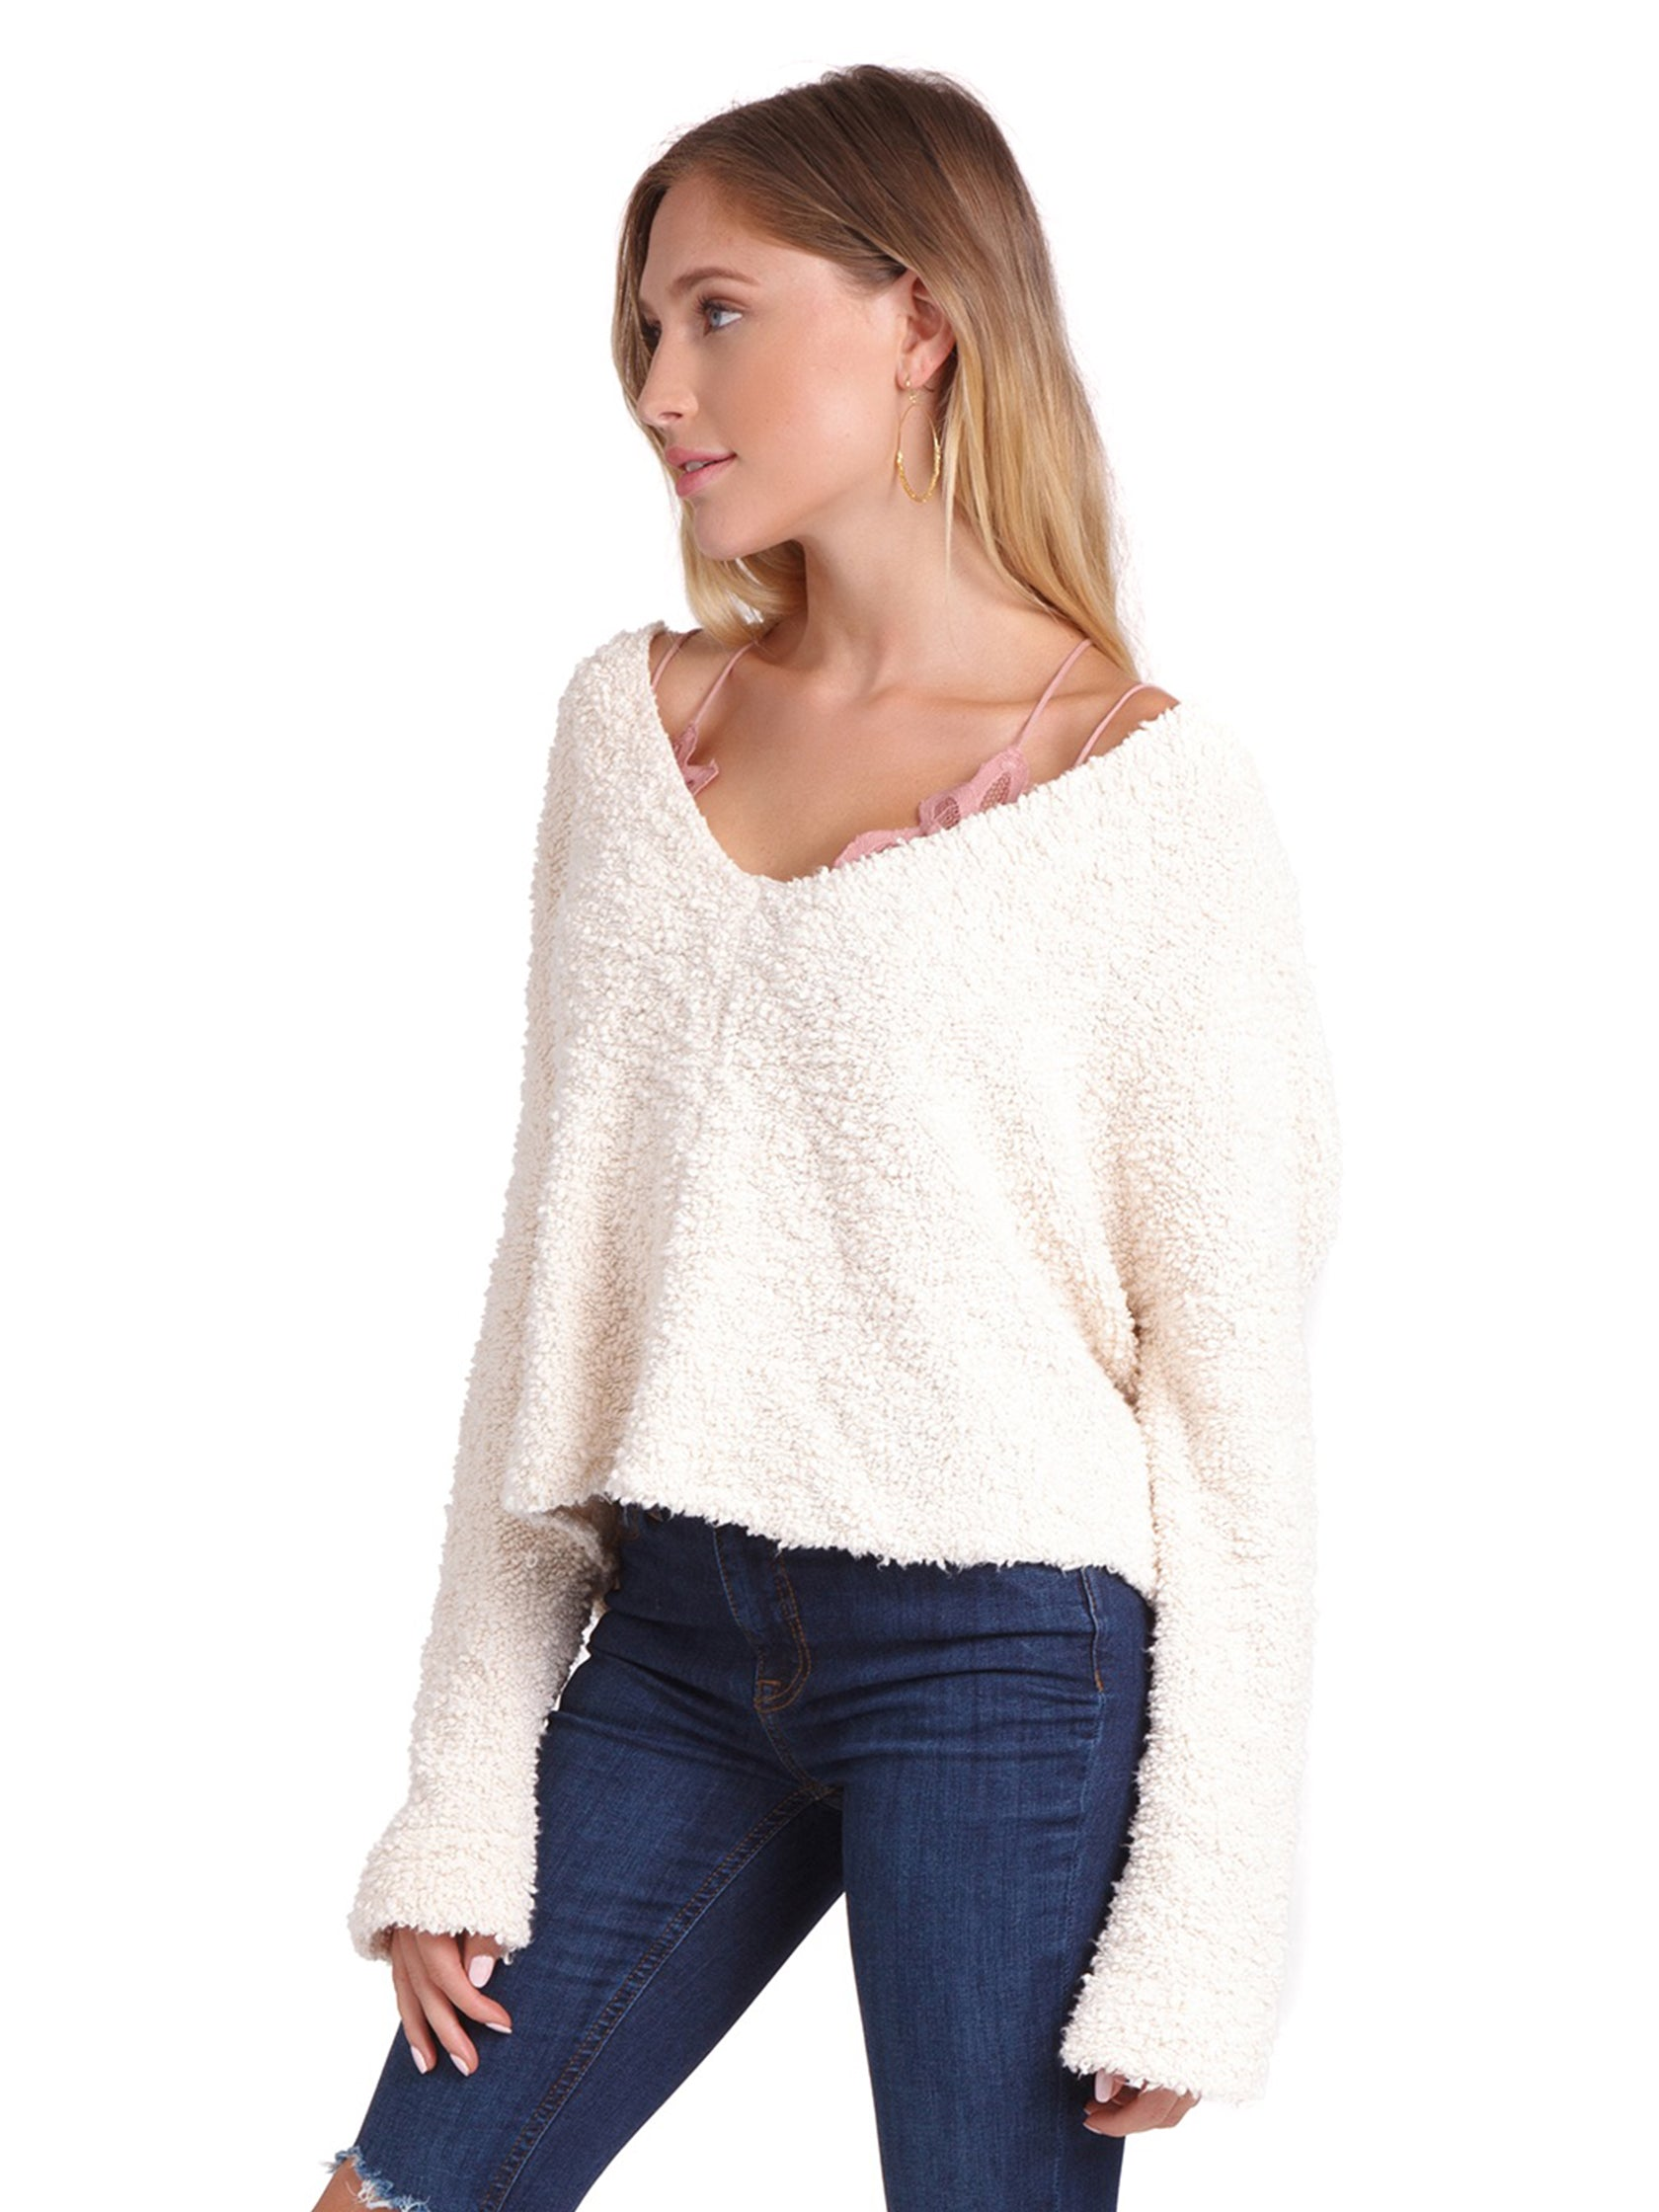 Women wearing a sweater rental from Free People called Popcorn Pullover